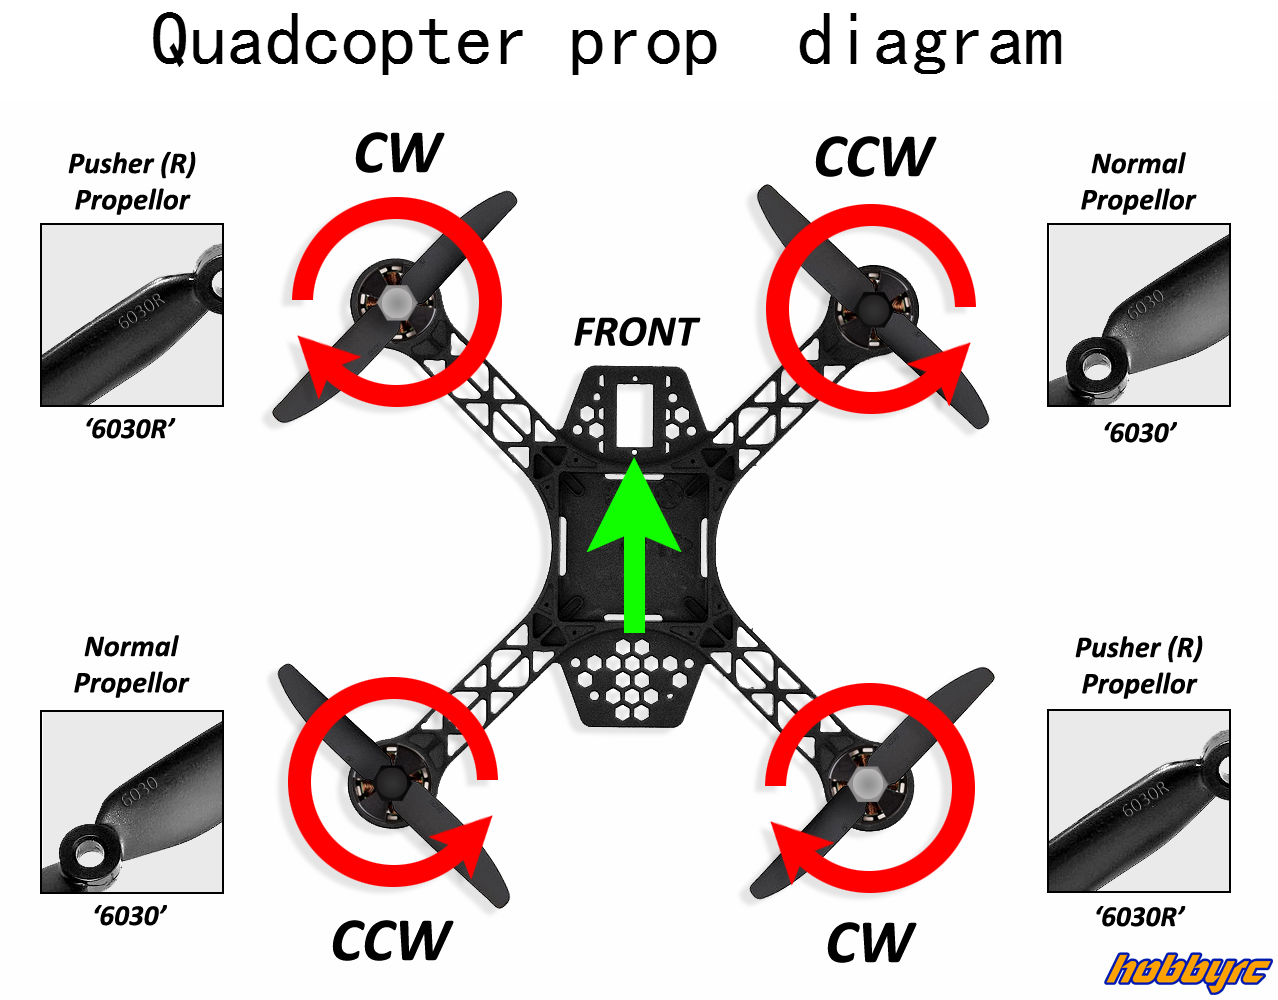 Quadcopter Wiring Diagram Guide How To Draw A